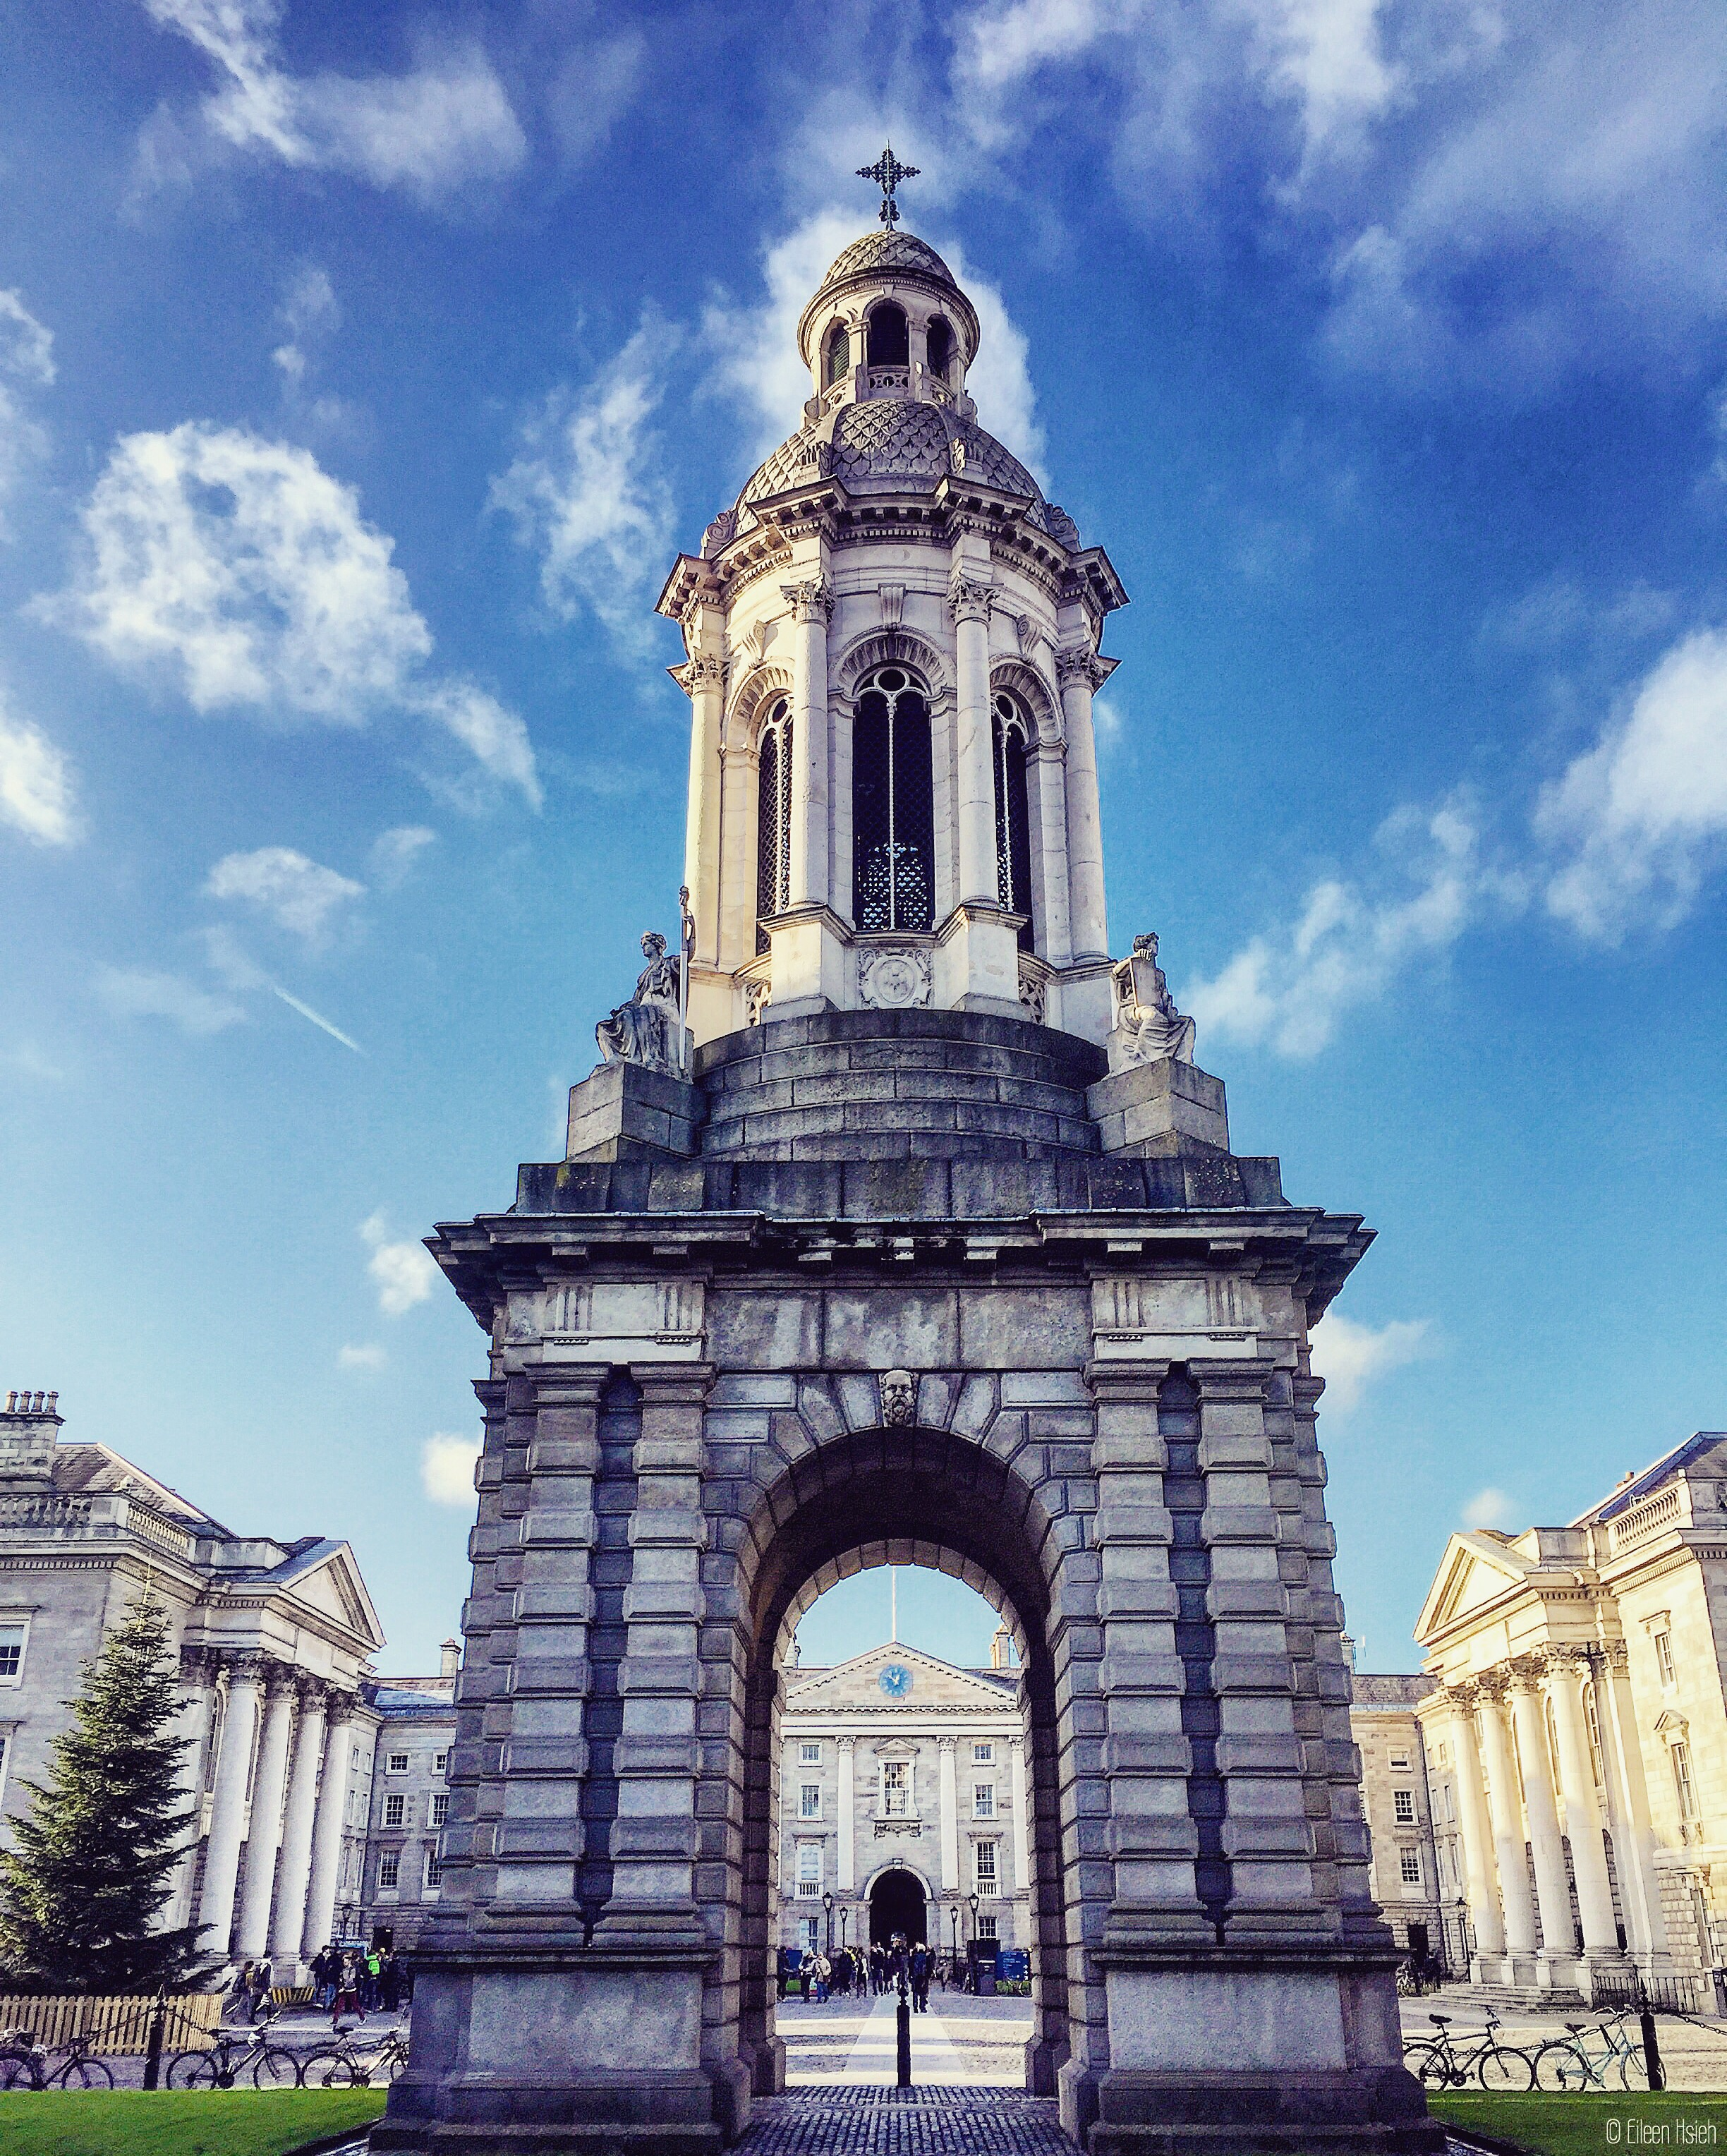 A popular legend at the Trinity College goes like this: If you walk under the bell tower and the bell tolls while you're under it, you will fail your exams. You have been warned.